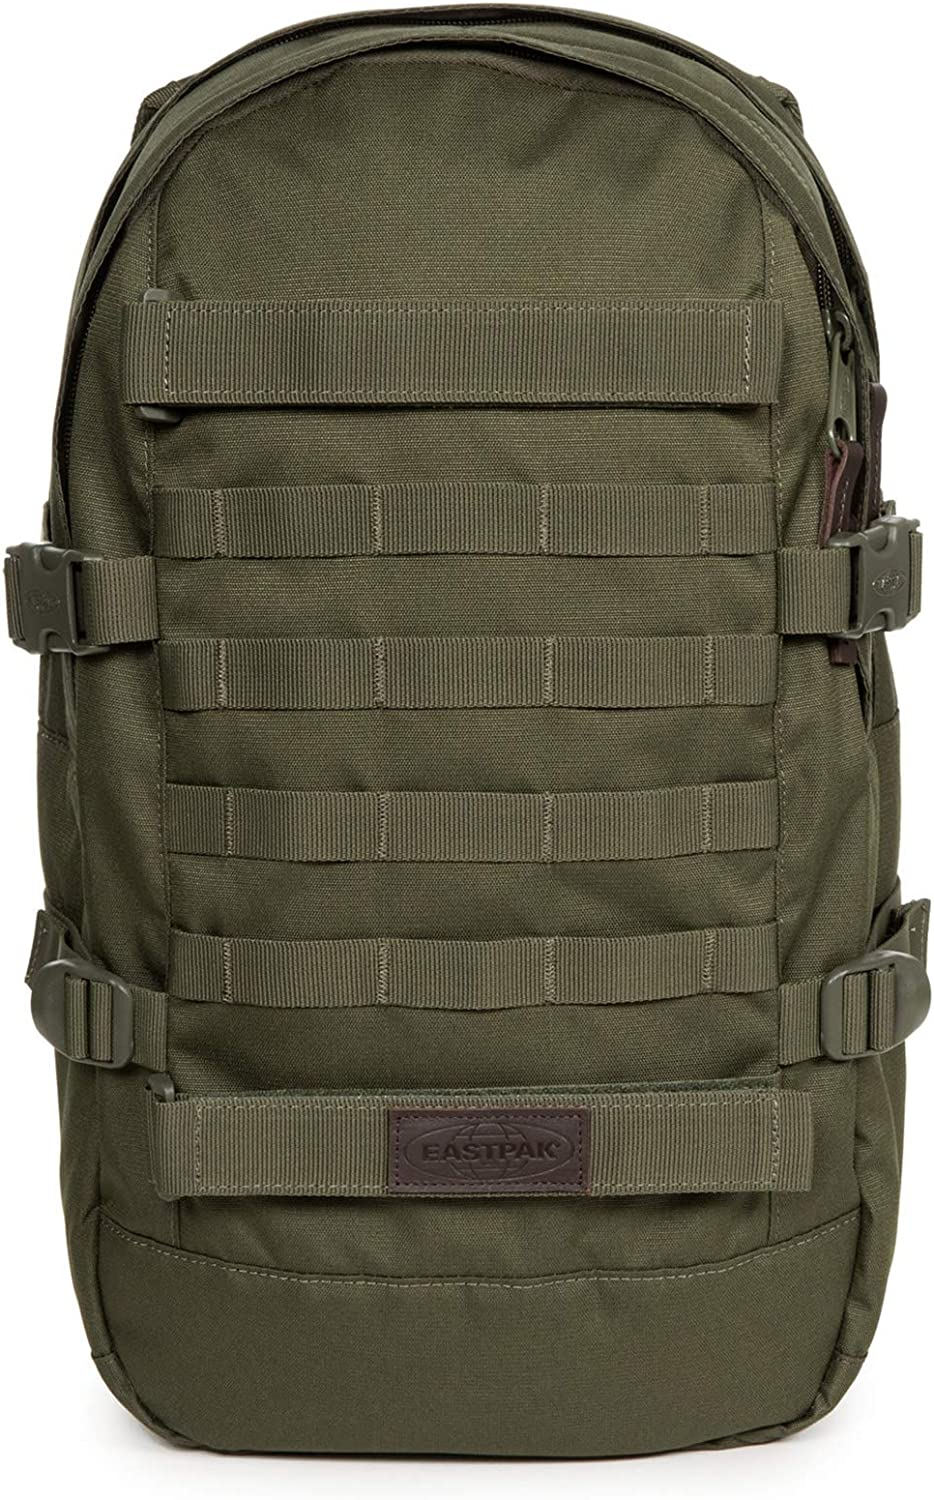 Eastpak Floid Tact Backpack One Size Mono Jungle